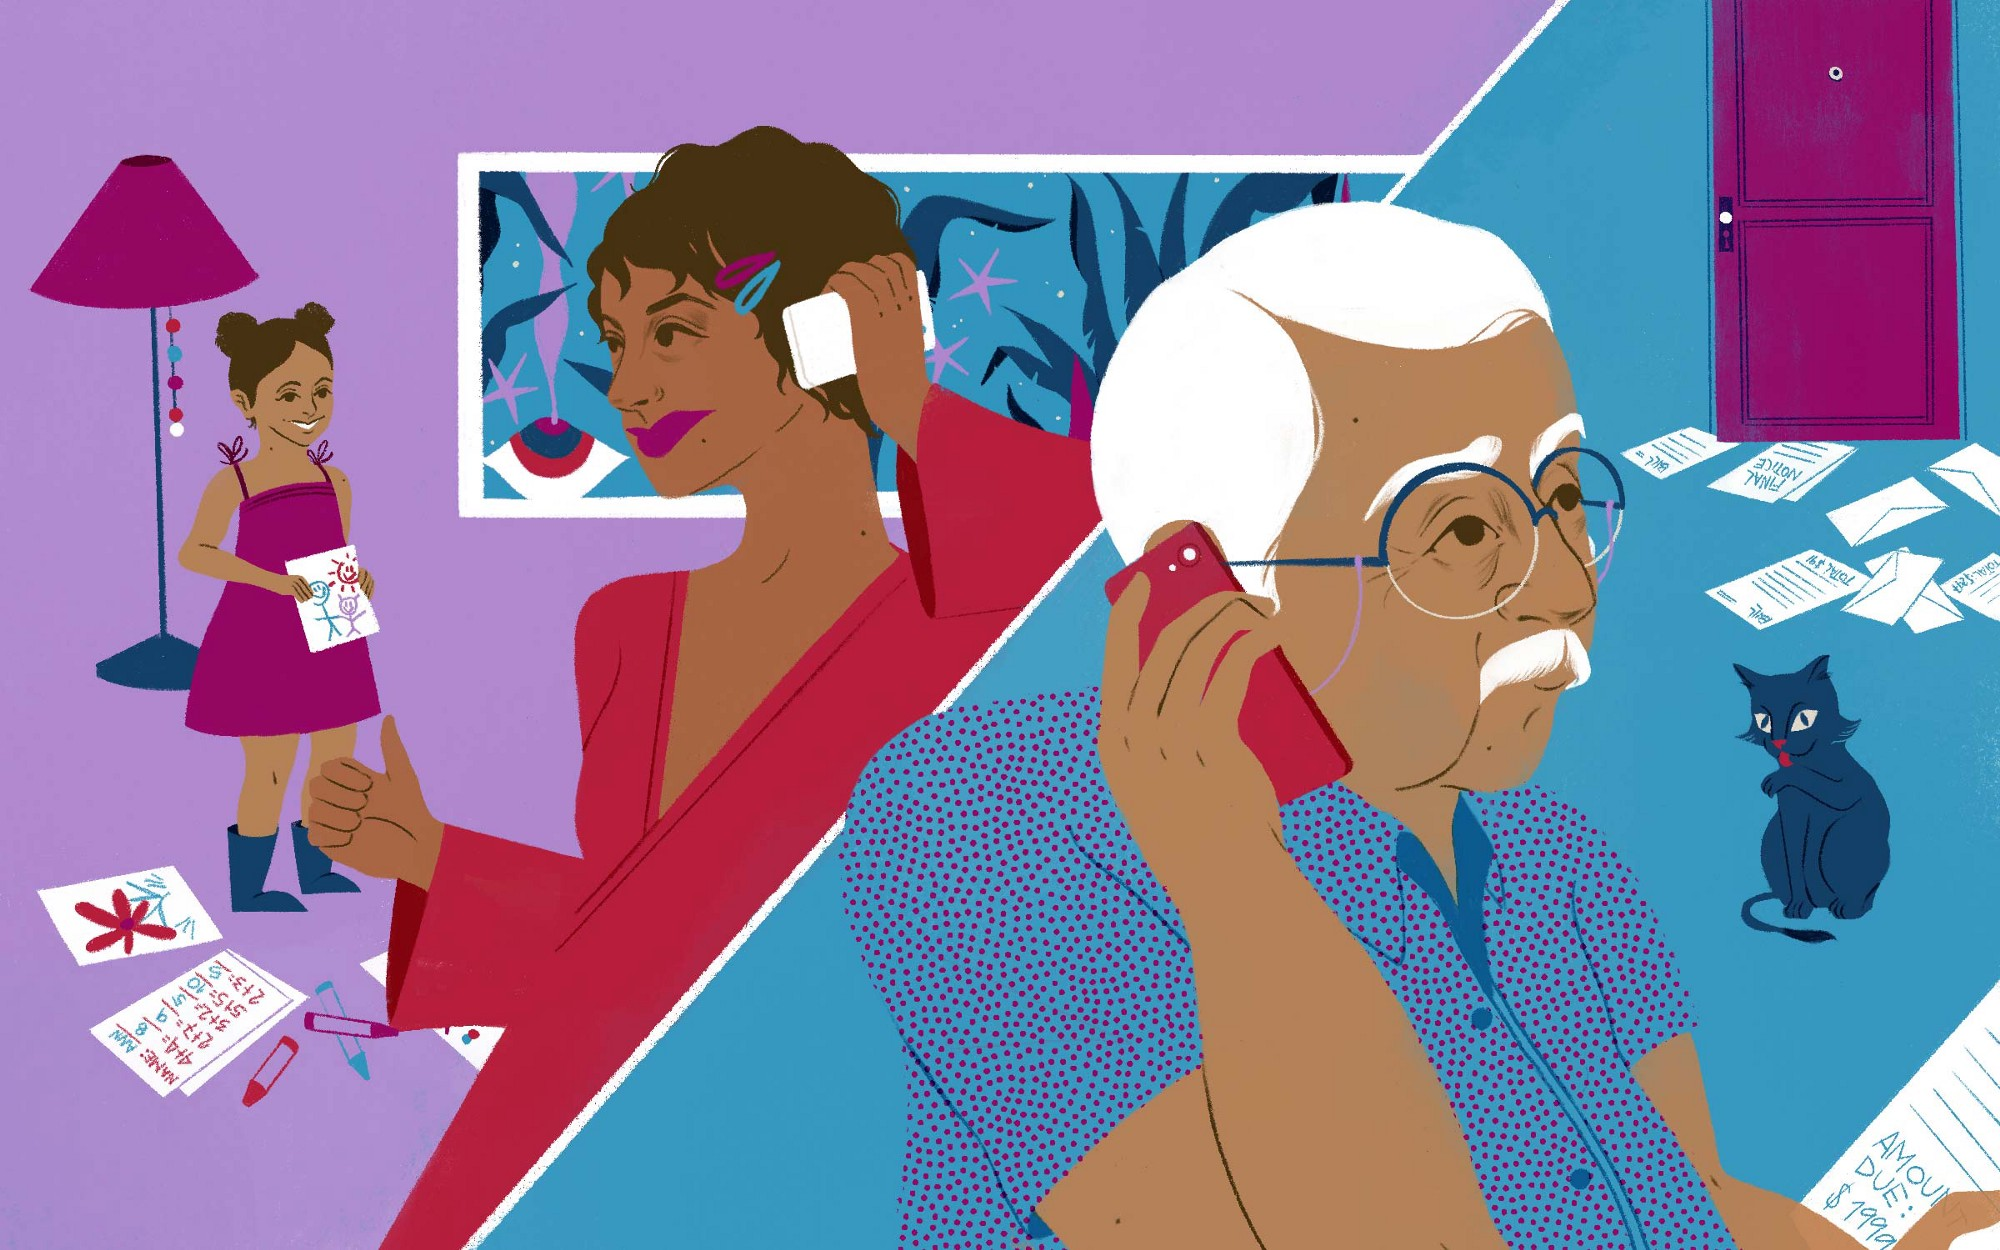 An illustration of a black woman on the phone with her elderly father, while her young daughter is in the background.